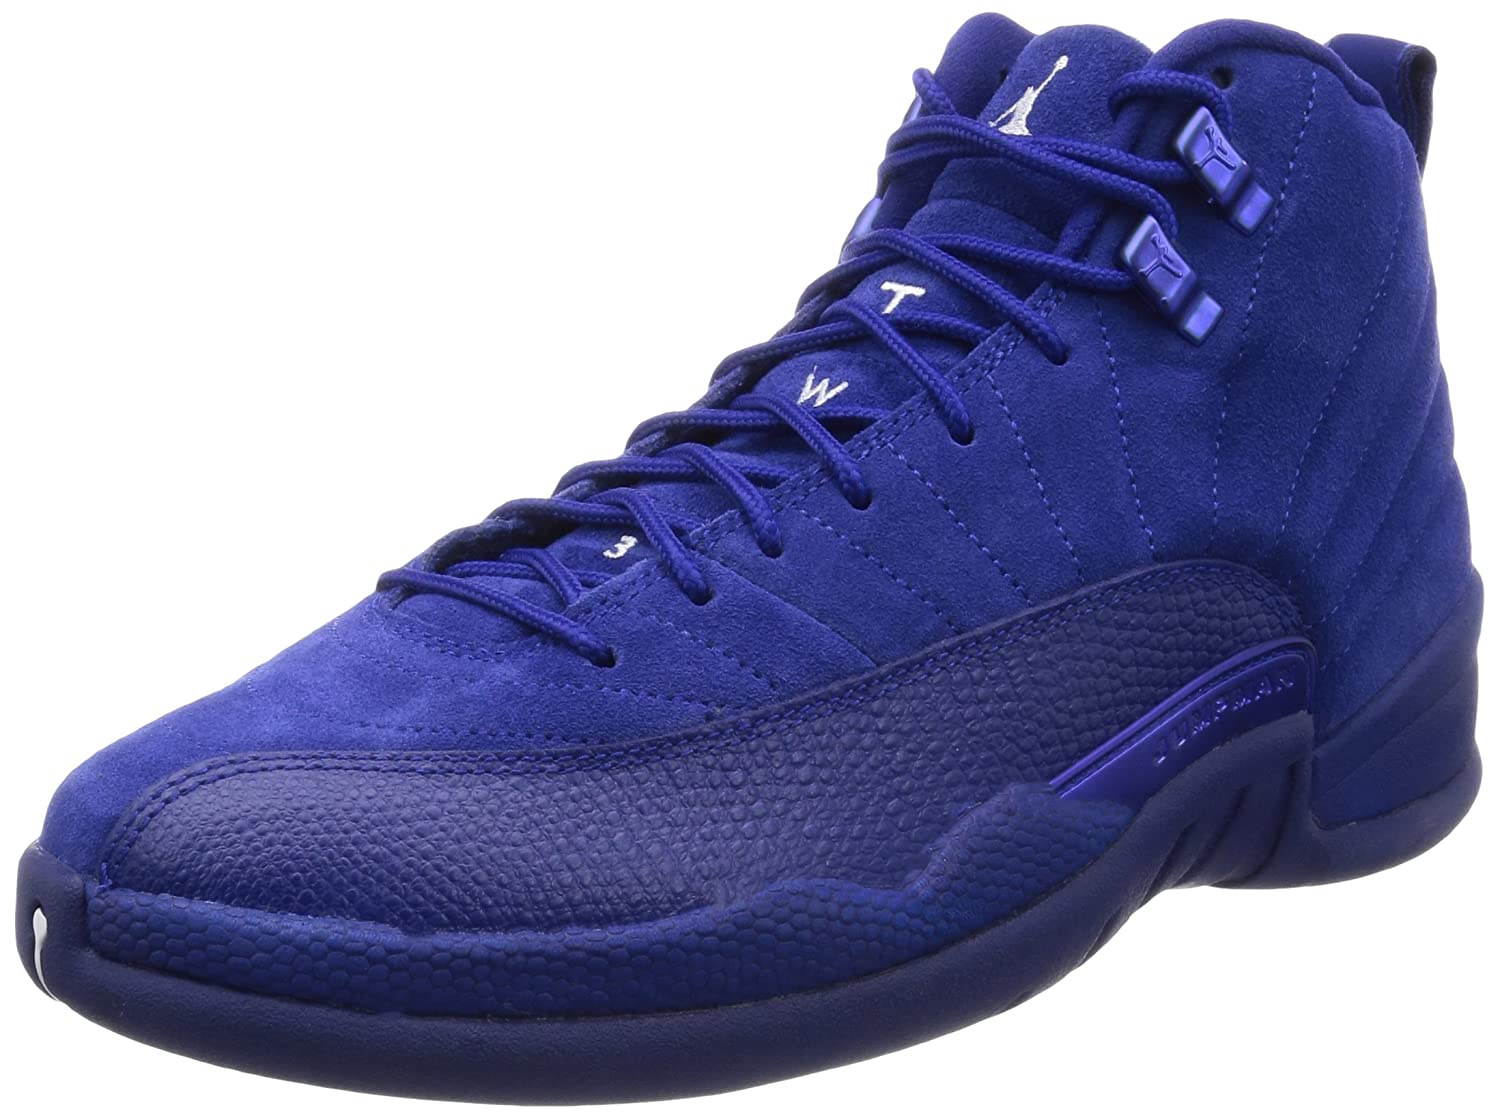 low priced c2606 30dc3 Nike Mens Air Jordan 12 Retro Deep Royal Blue Suede Size 9 ...